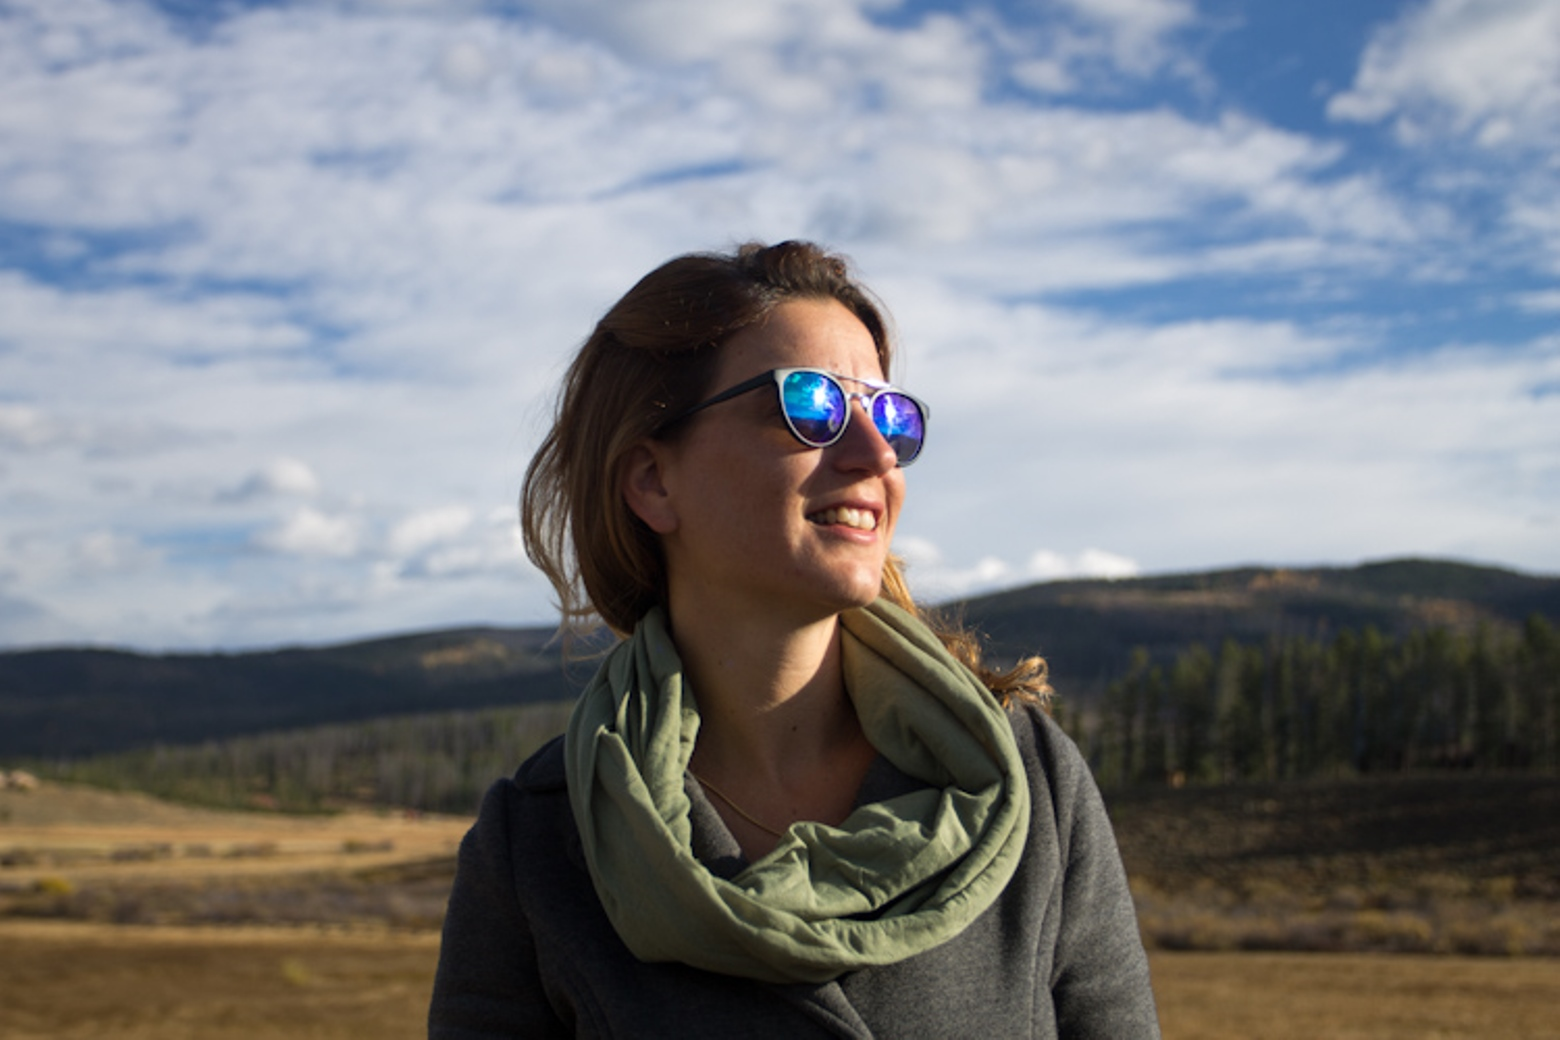 Noa Margalit on the Devil's Thumb Ranch in Colorado during The Harvest. Photo by Ksenia Prints